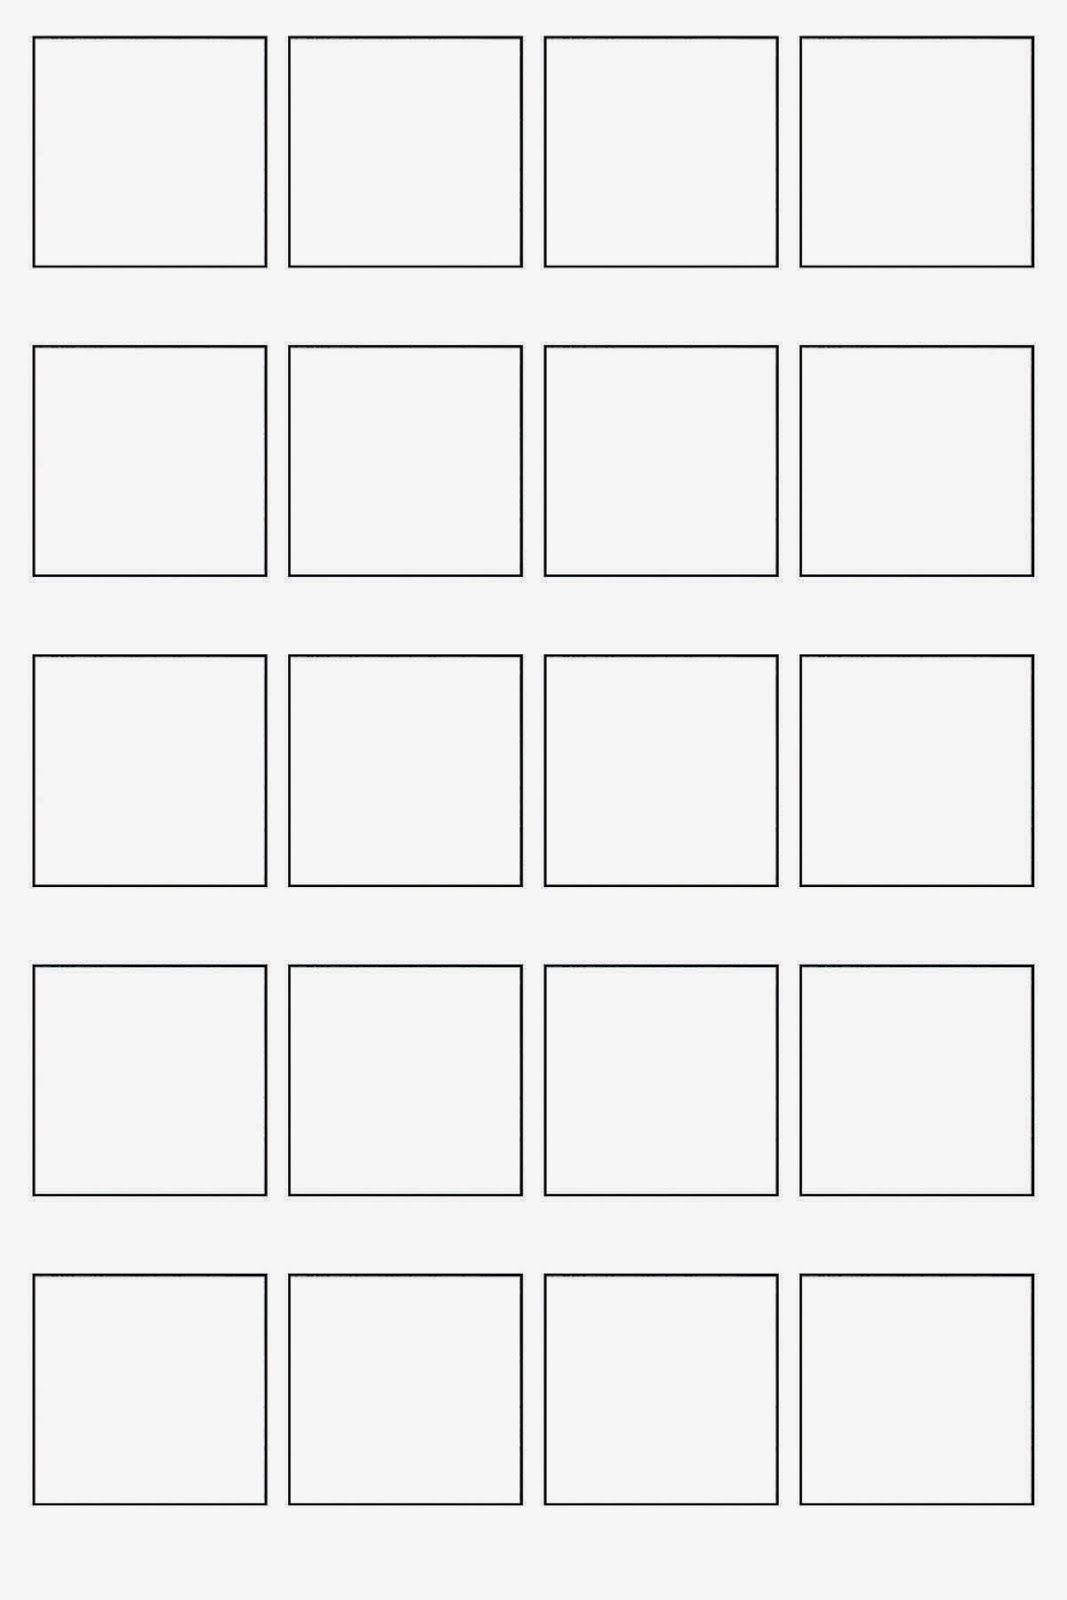 Blank Sheet For Pattern Collections With Images